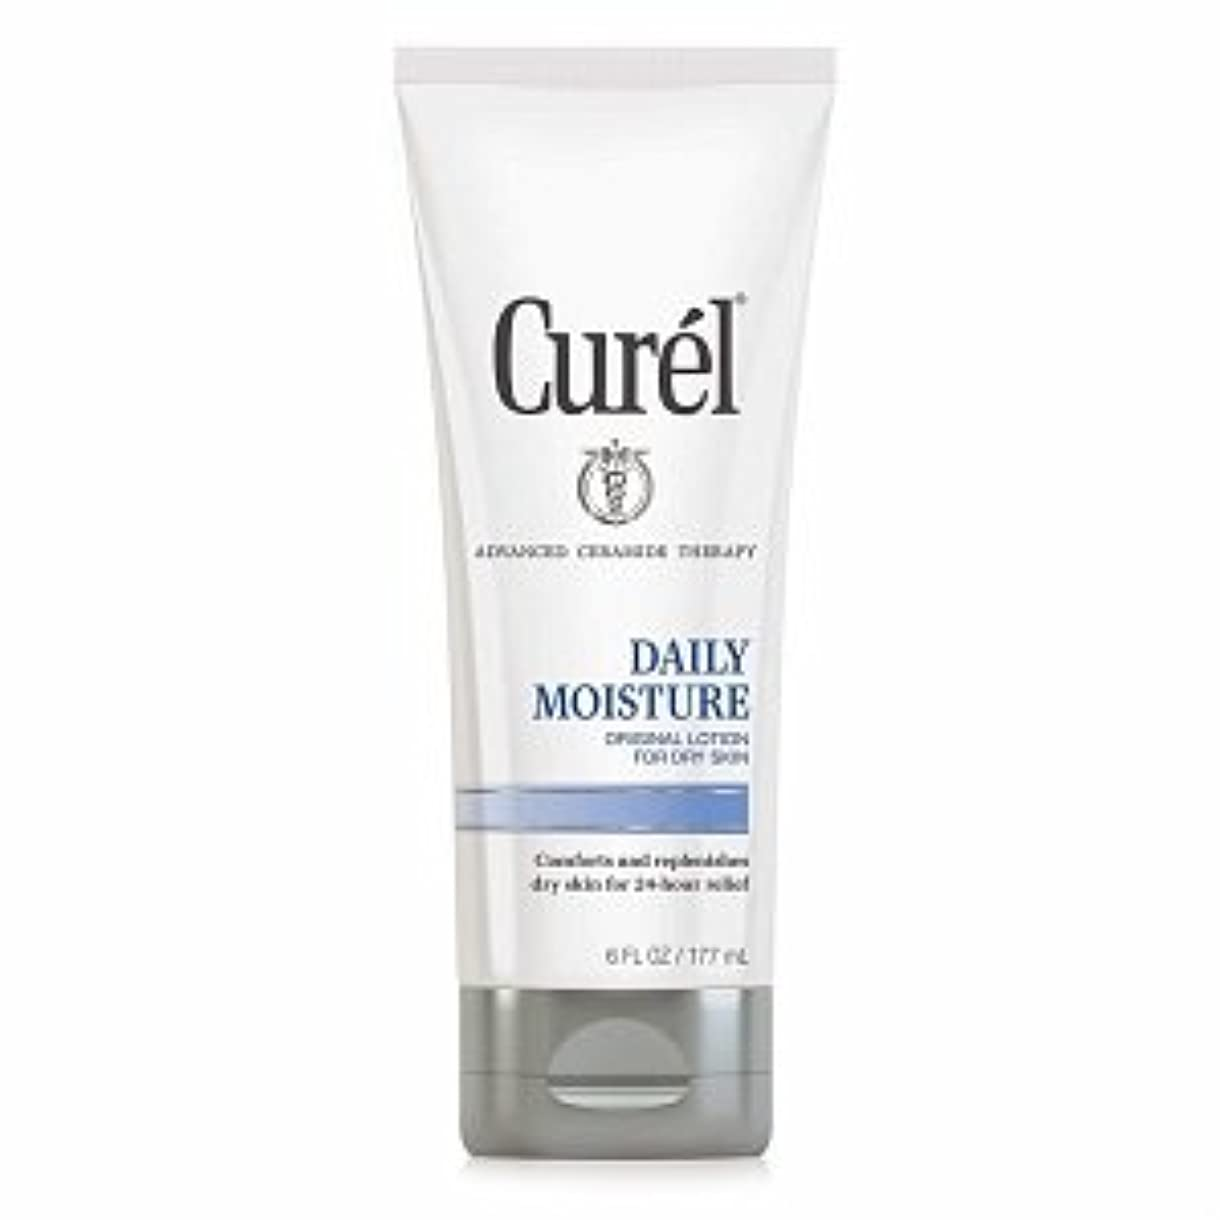 傾いた突き刺す指導するCurel Daily Moisture Original Lotion for Dry Skin - 6 fl oz (177 ml)